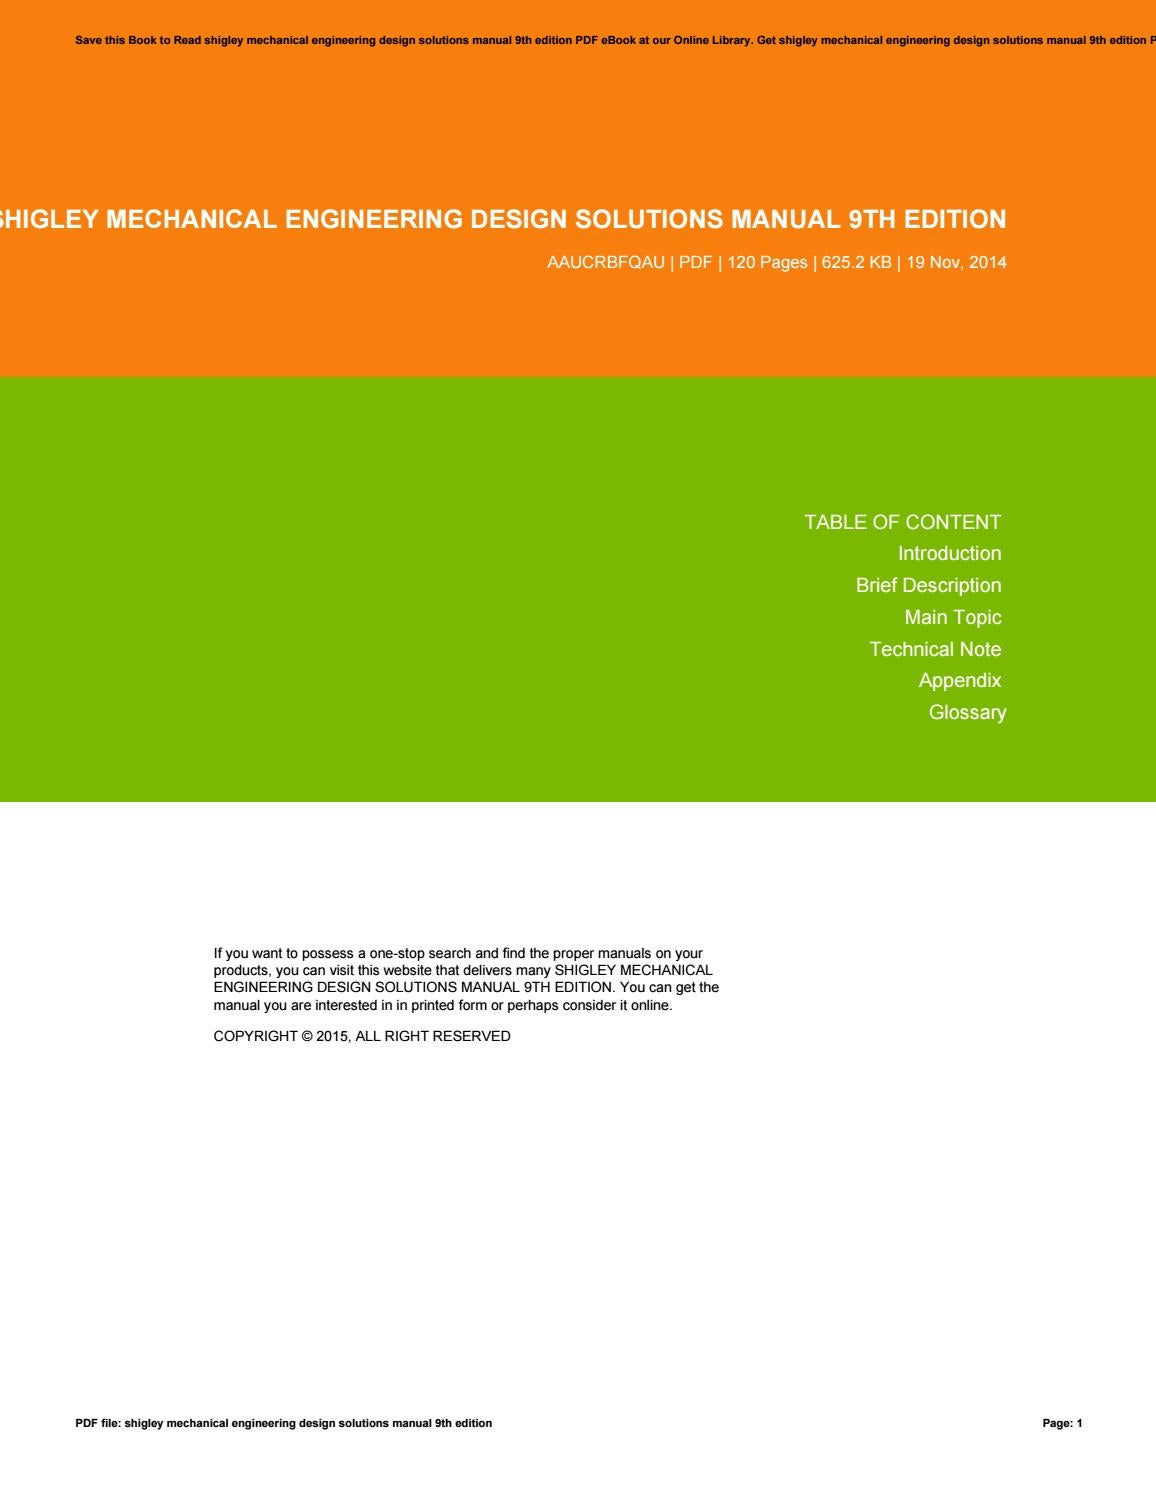 Shigley Mechanical Engineering Design Solutions Manual 9th Edition By Marshawilson2538 Issuu